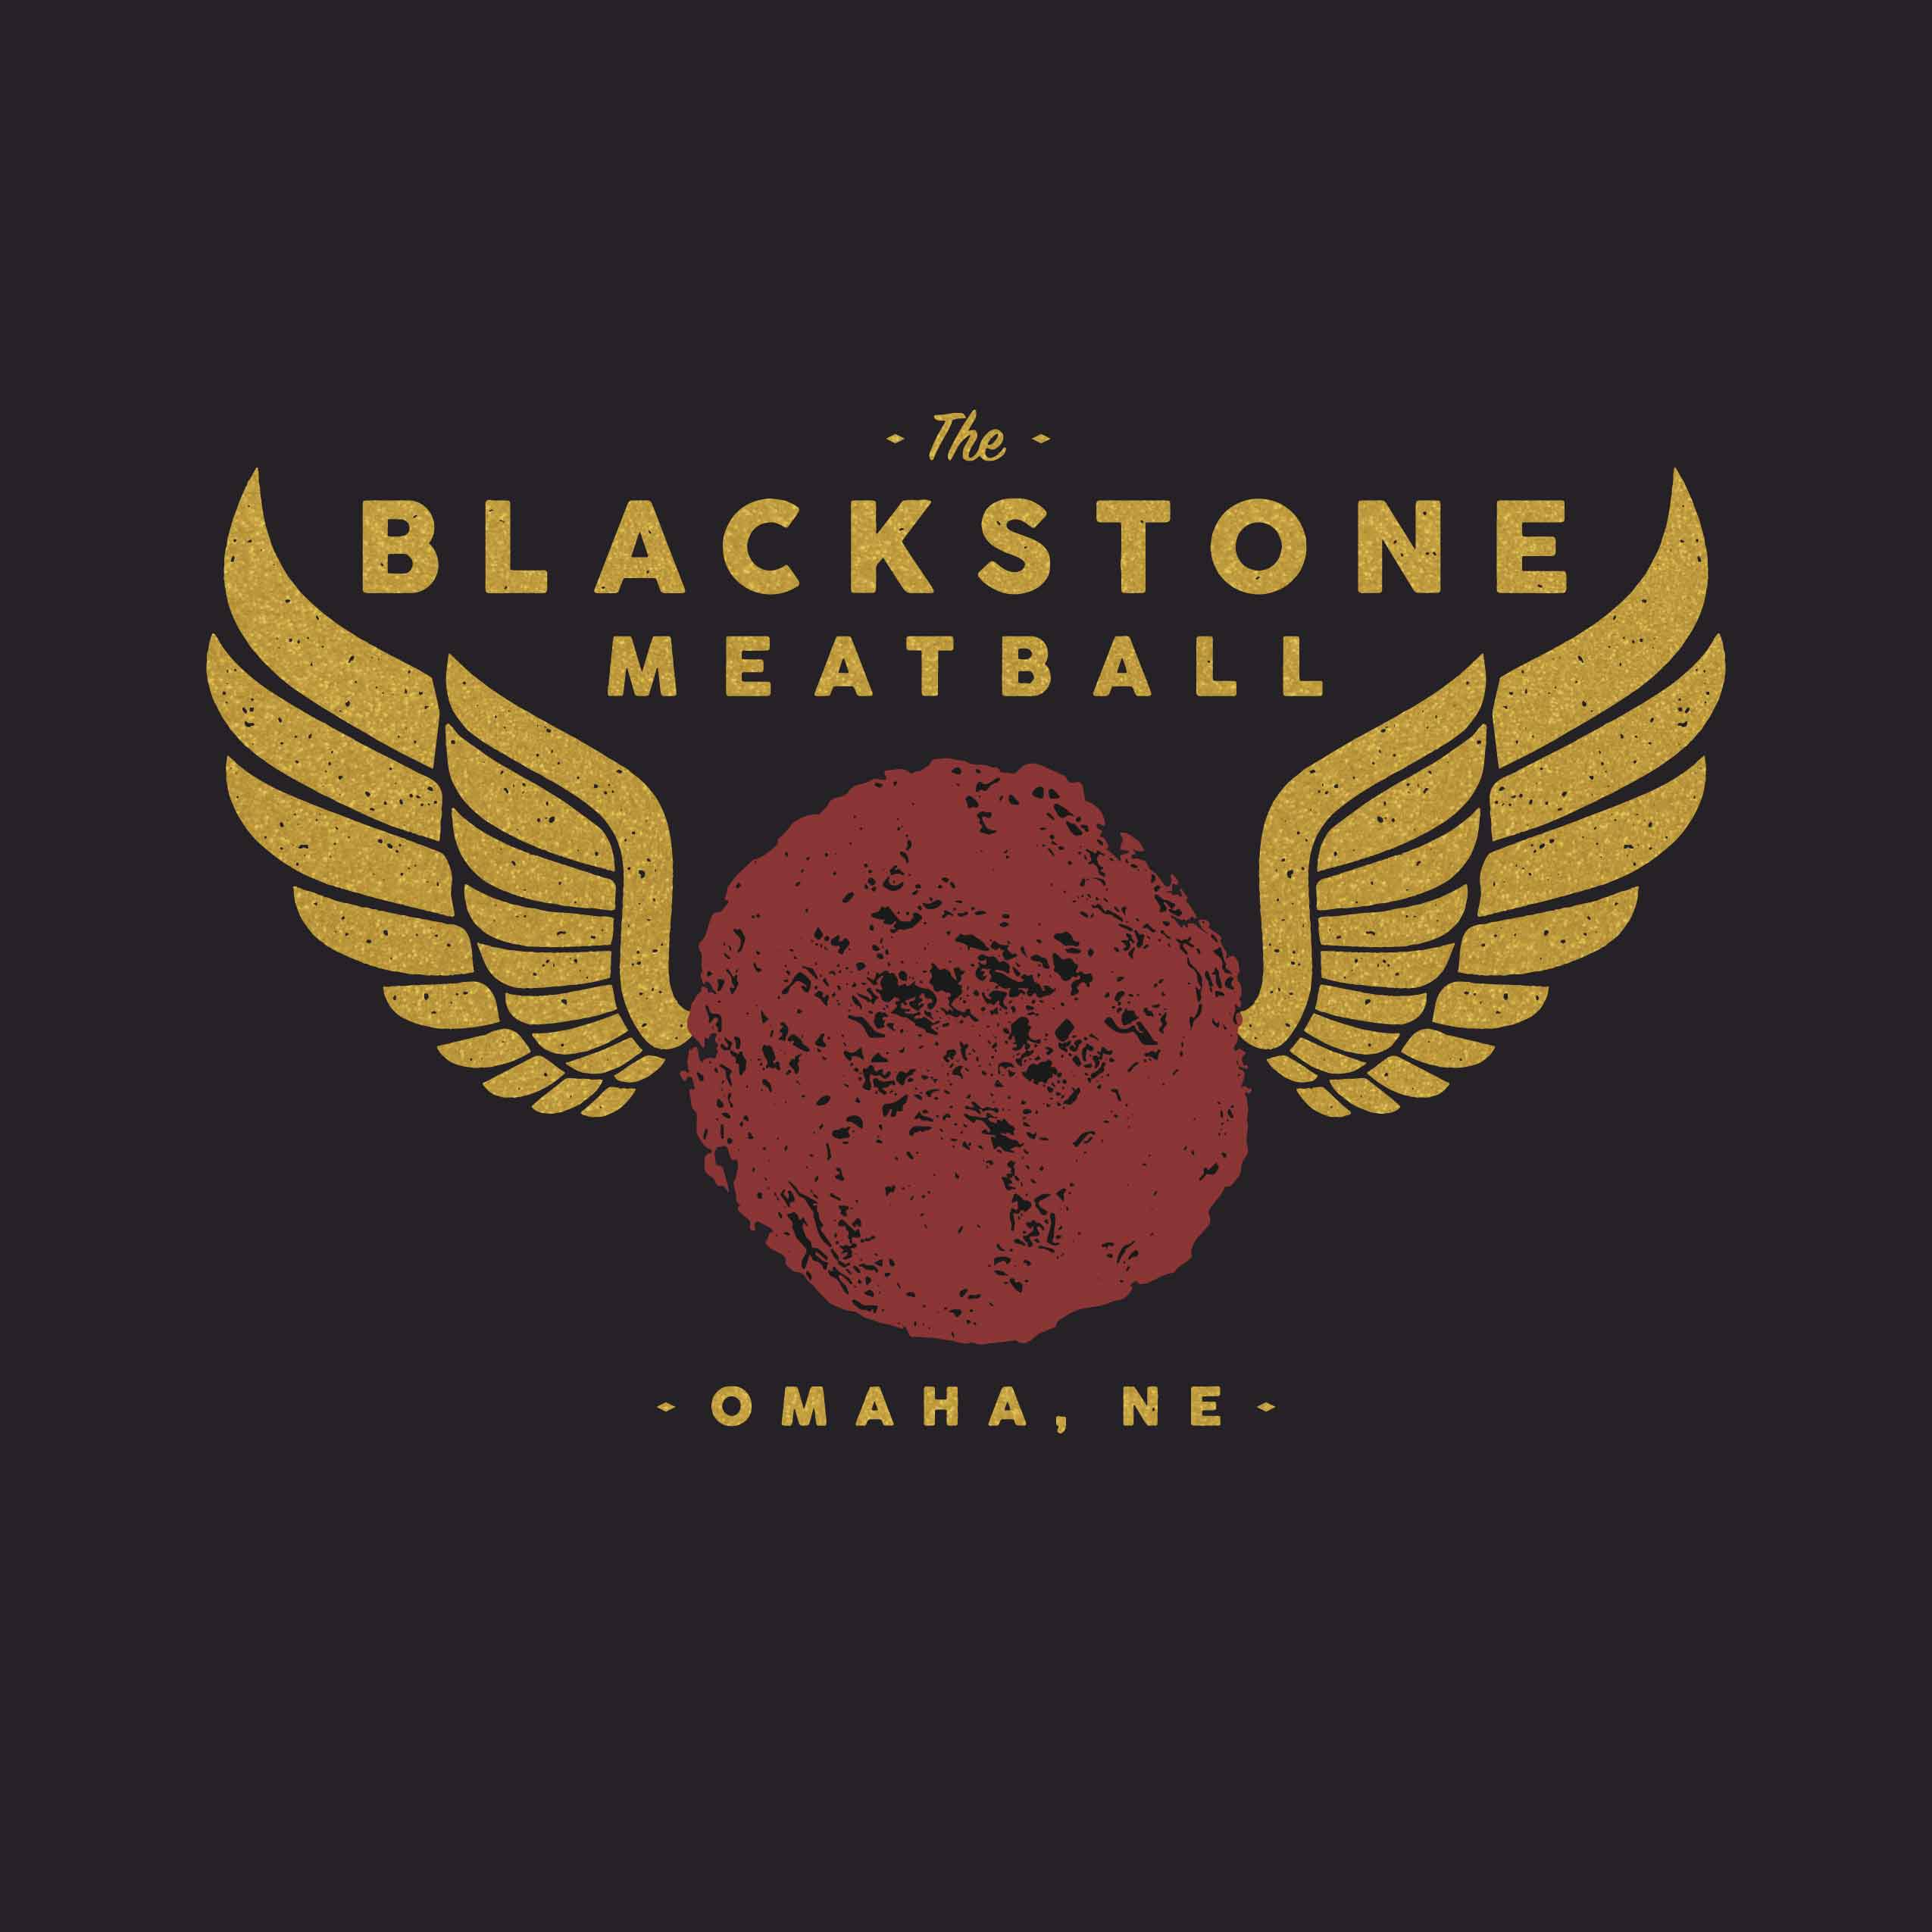 blackstone meatball tshirt design